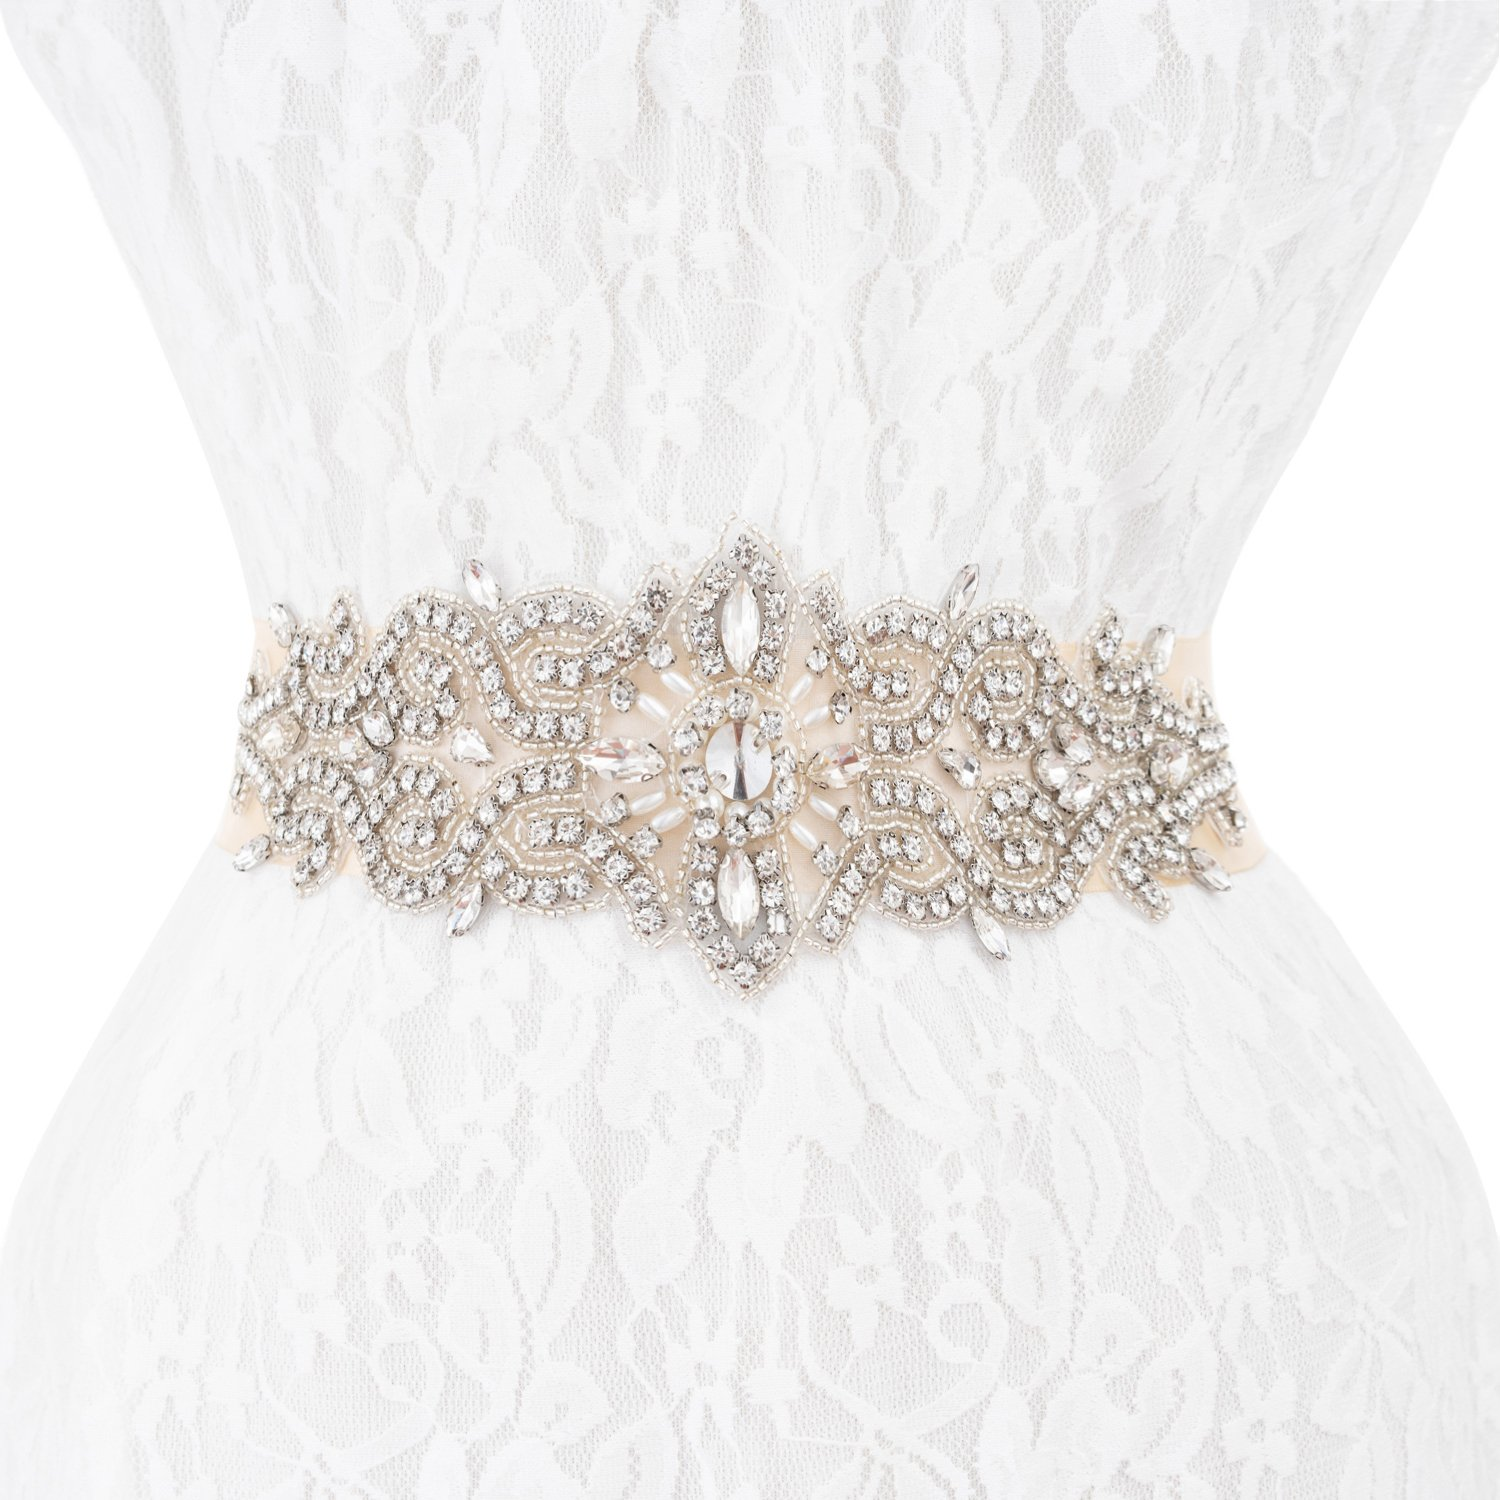 Bridal Wedding Dress Sash Belt Applique with Crystals Rhinestones for Prom Party